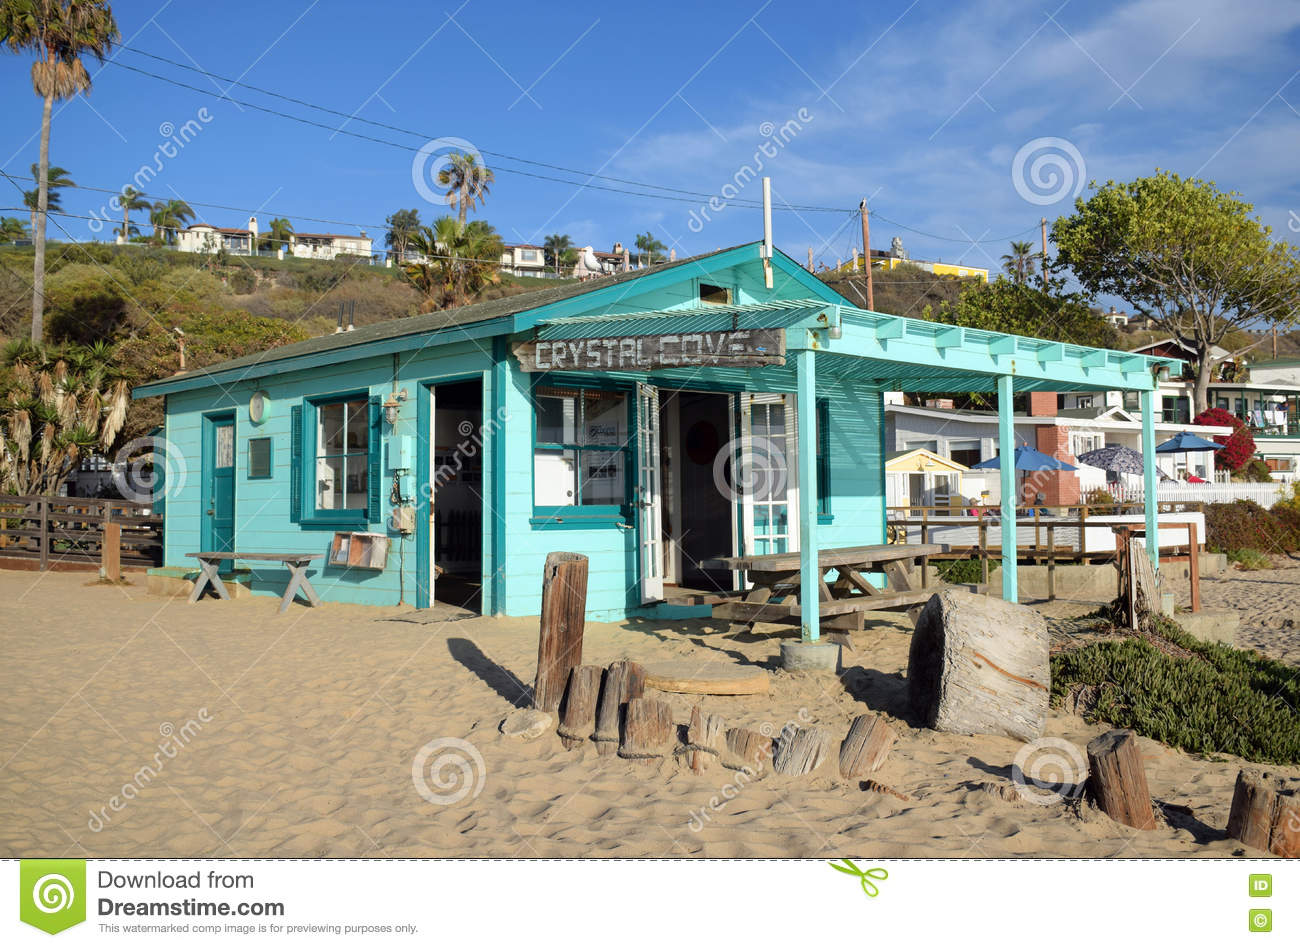 Historisch huis in Crystal Cove State Park